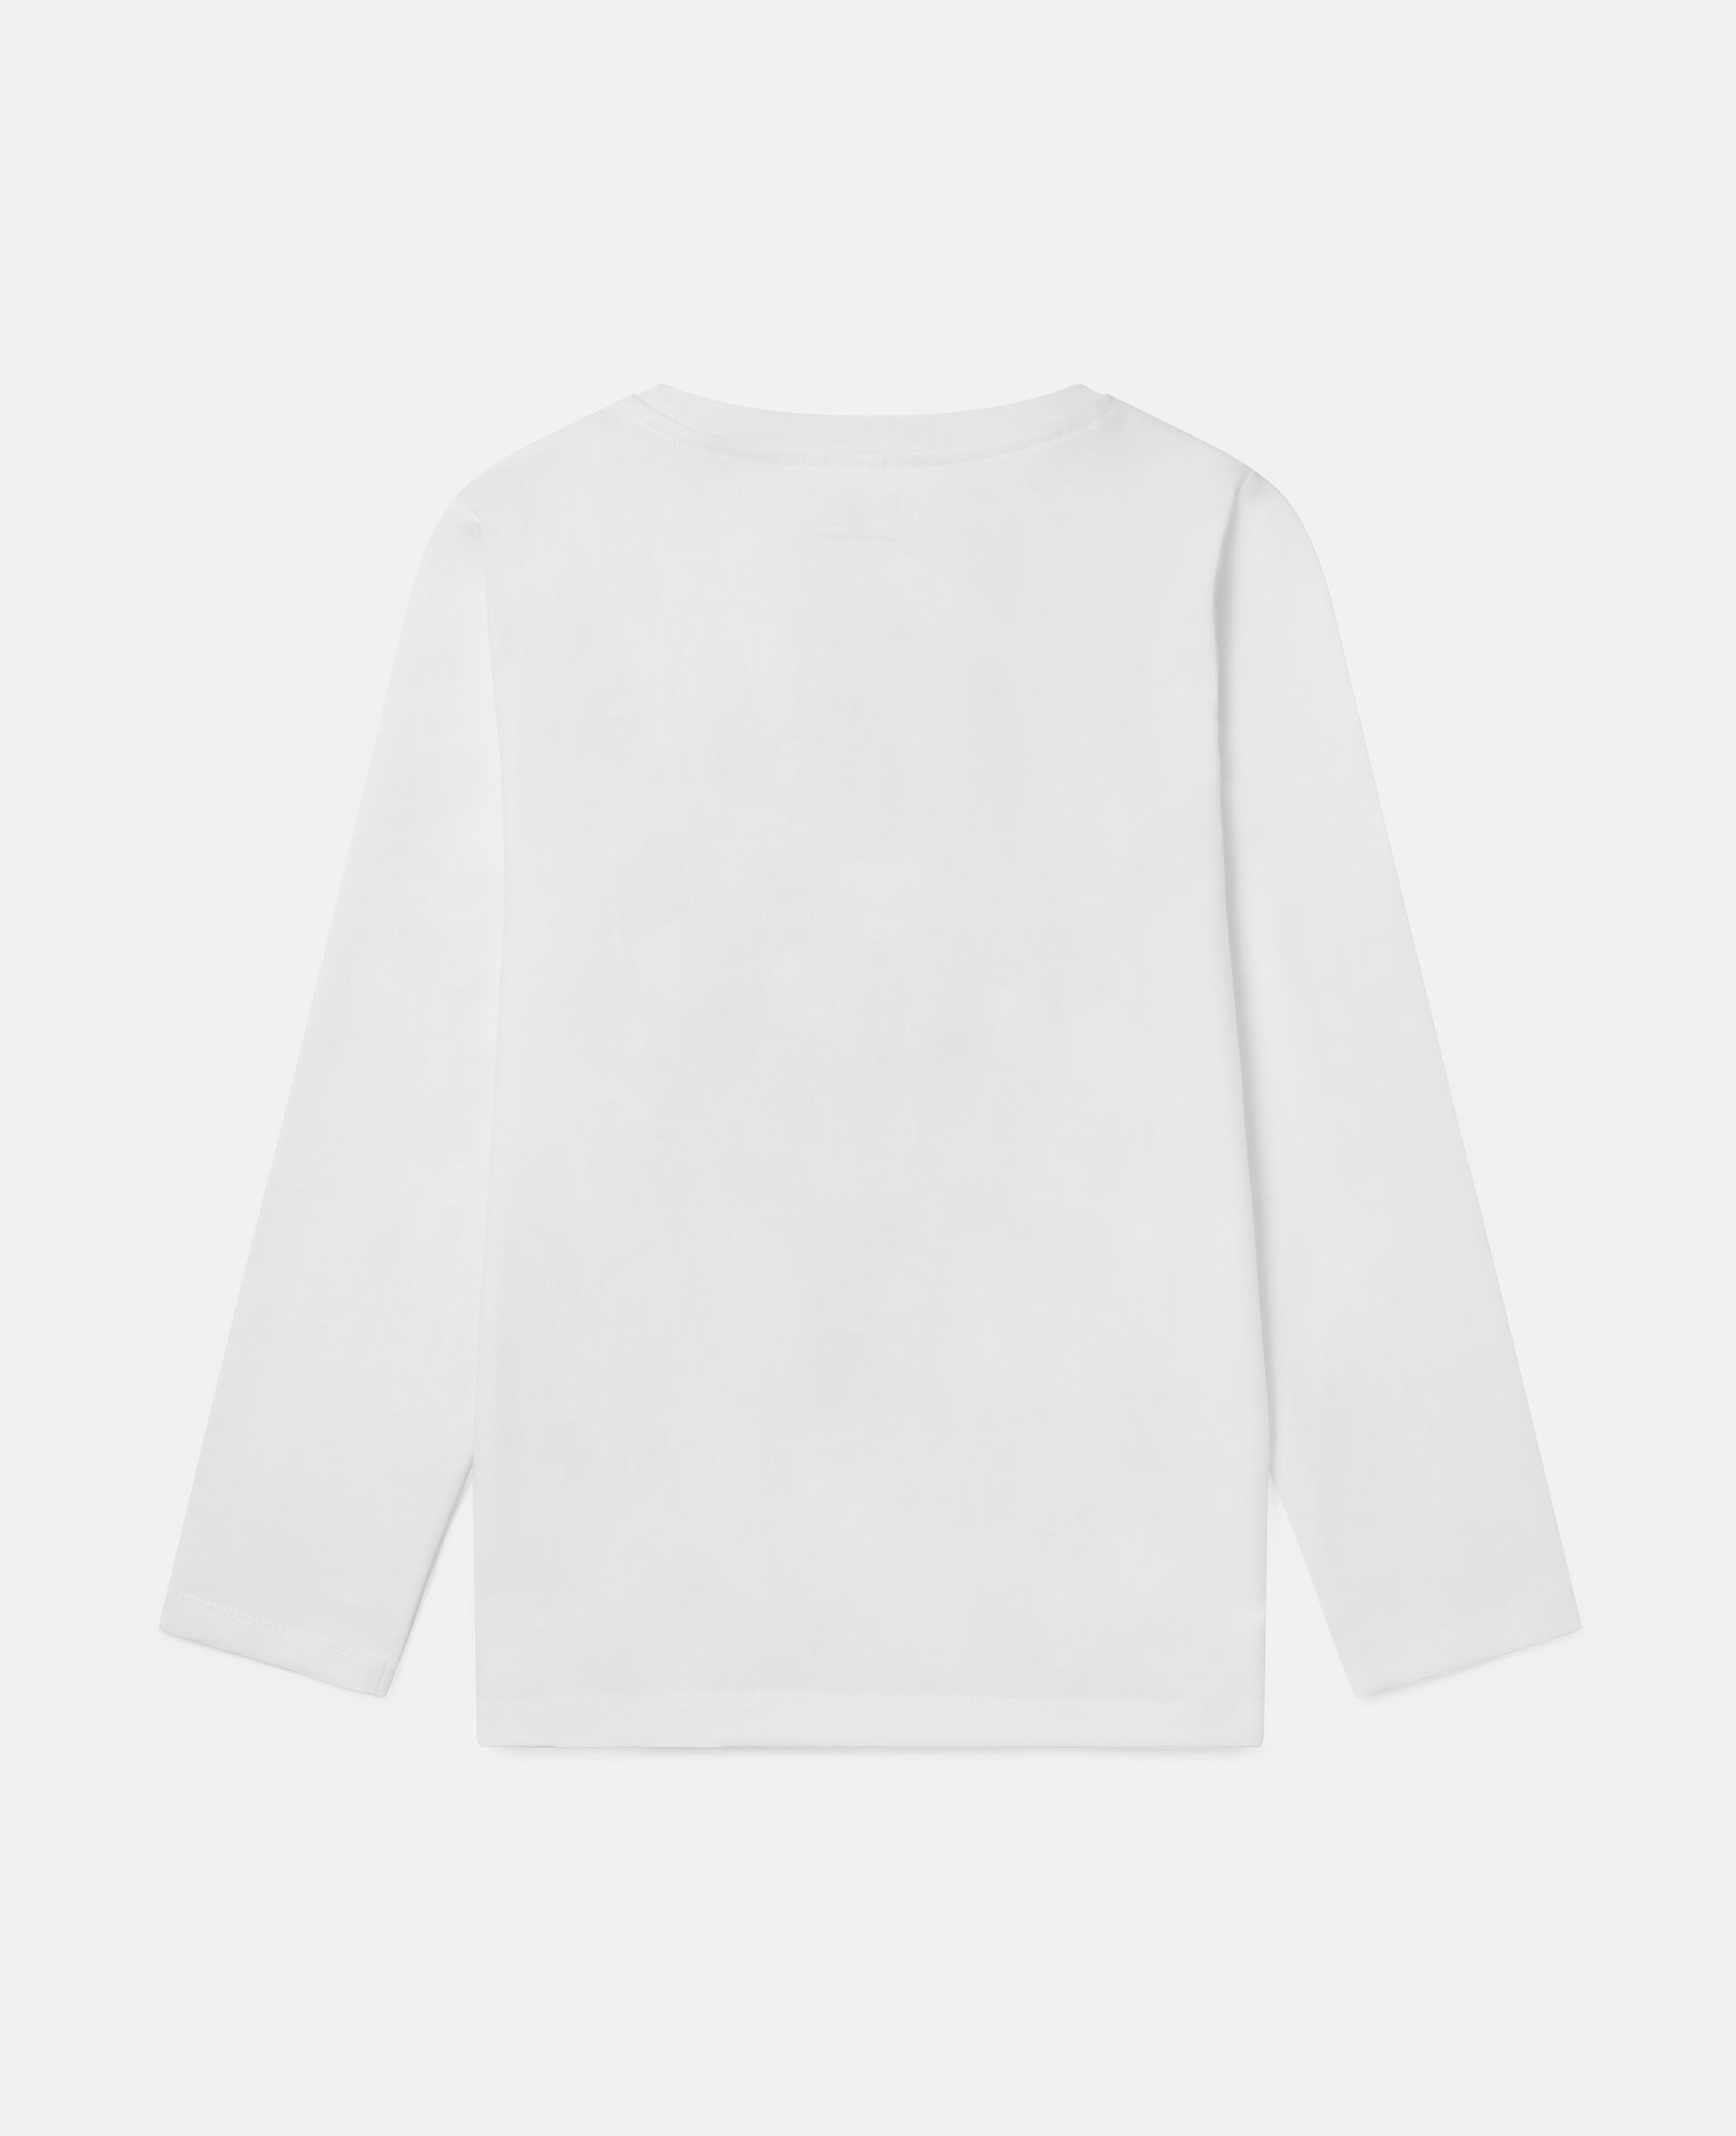 Happiest Cotton Top-White-large image number 3